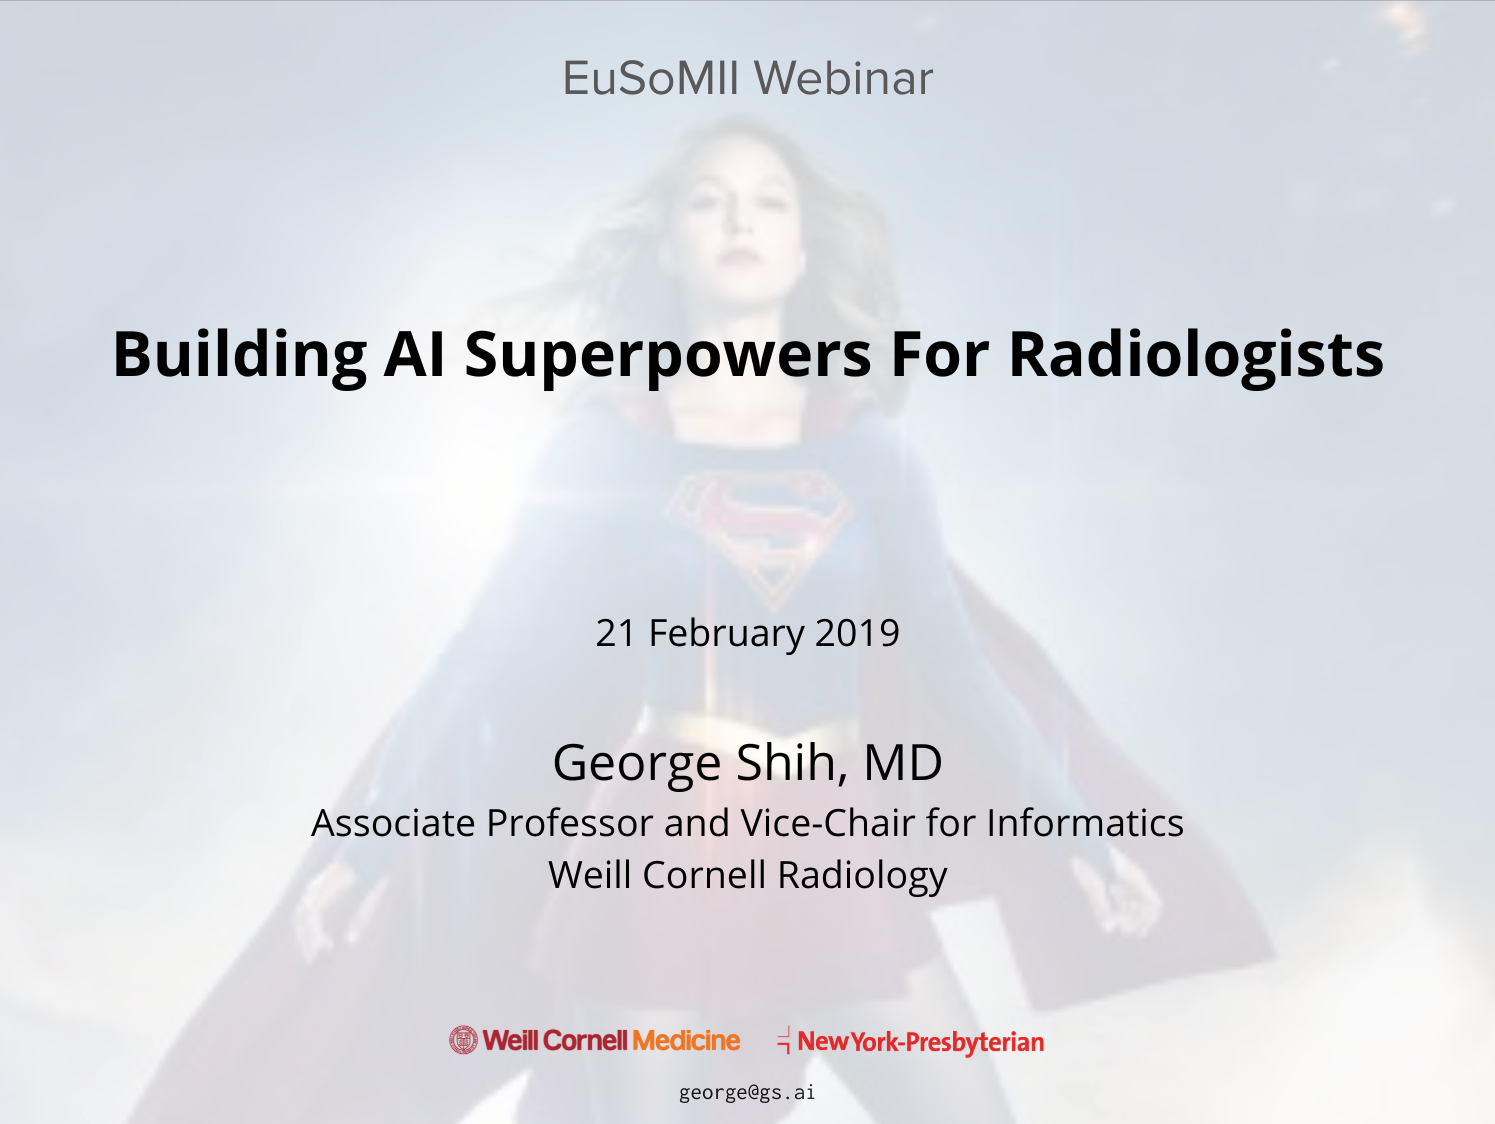 WEBINAR 'Building AI Superpowers For Radiologists' by George Shih